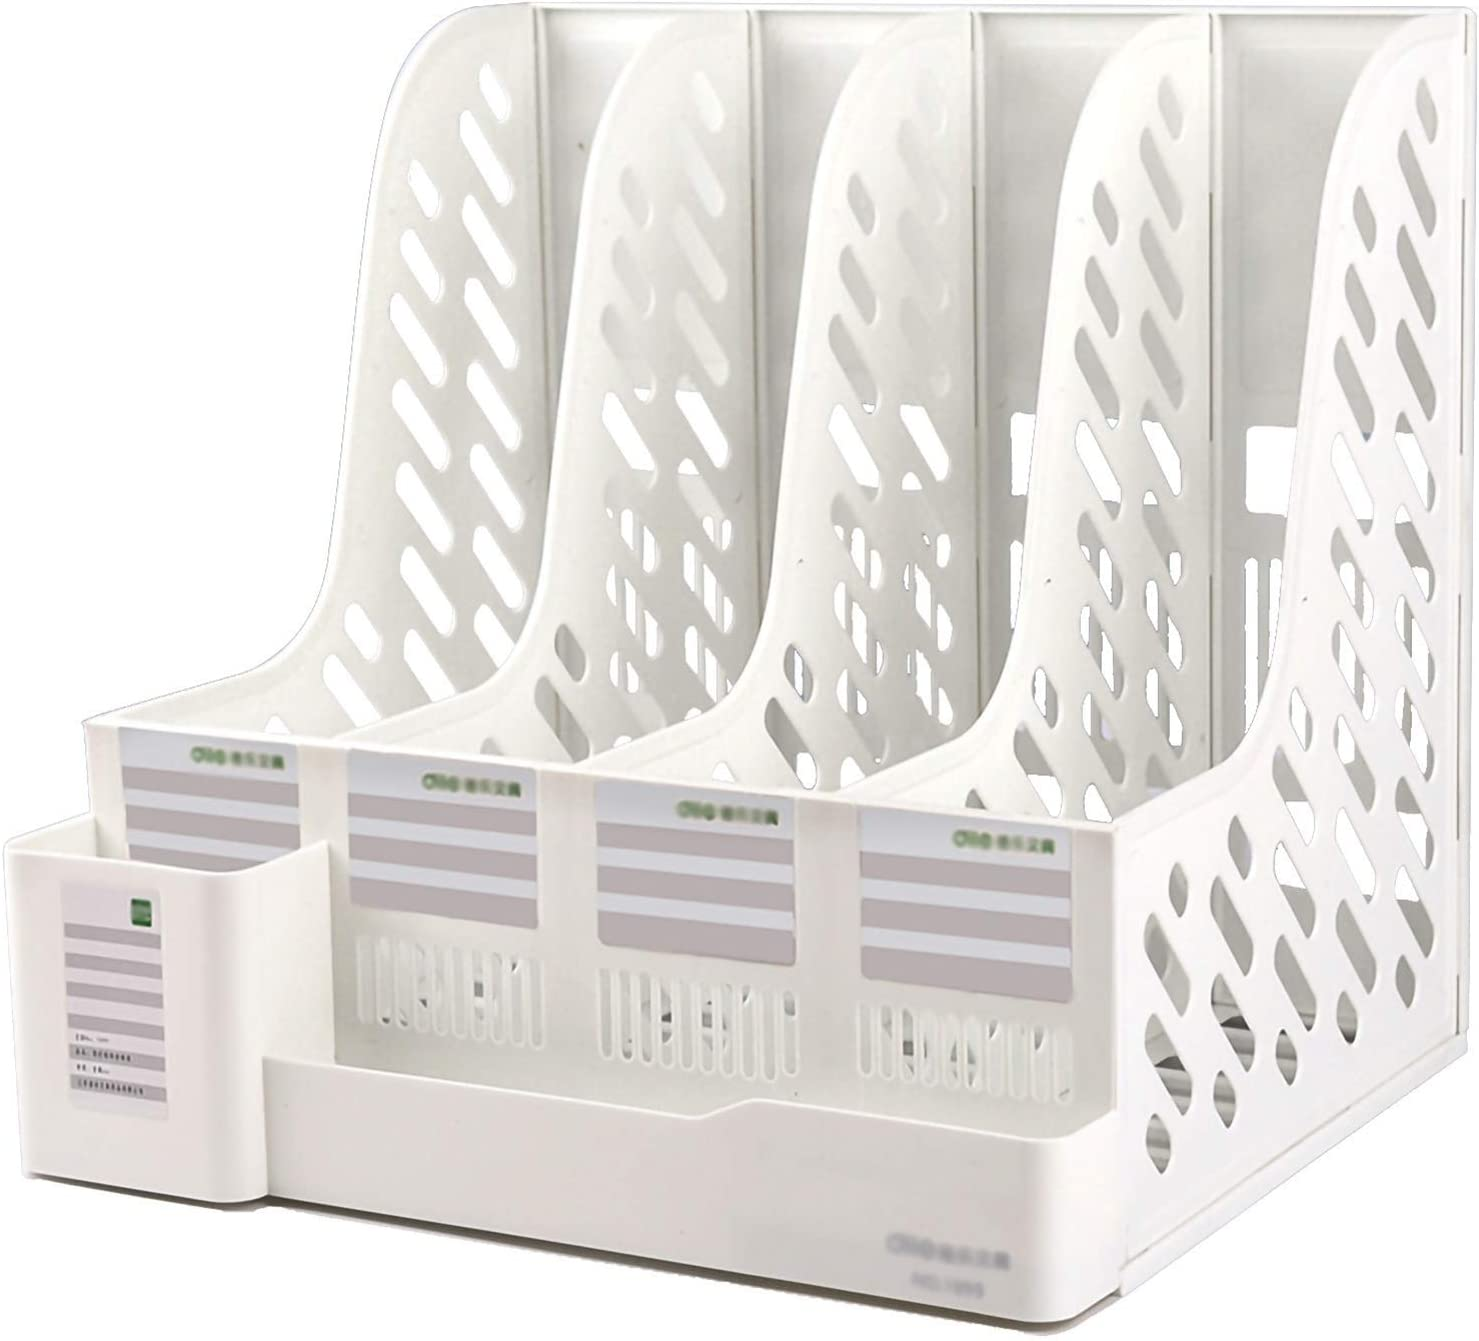 Super beauty product restock quality top! Bookshelf Sturdy Desktop 4 Sections Safety and trust F Organizer Vertical